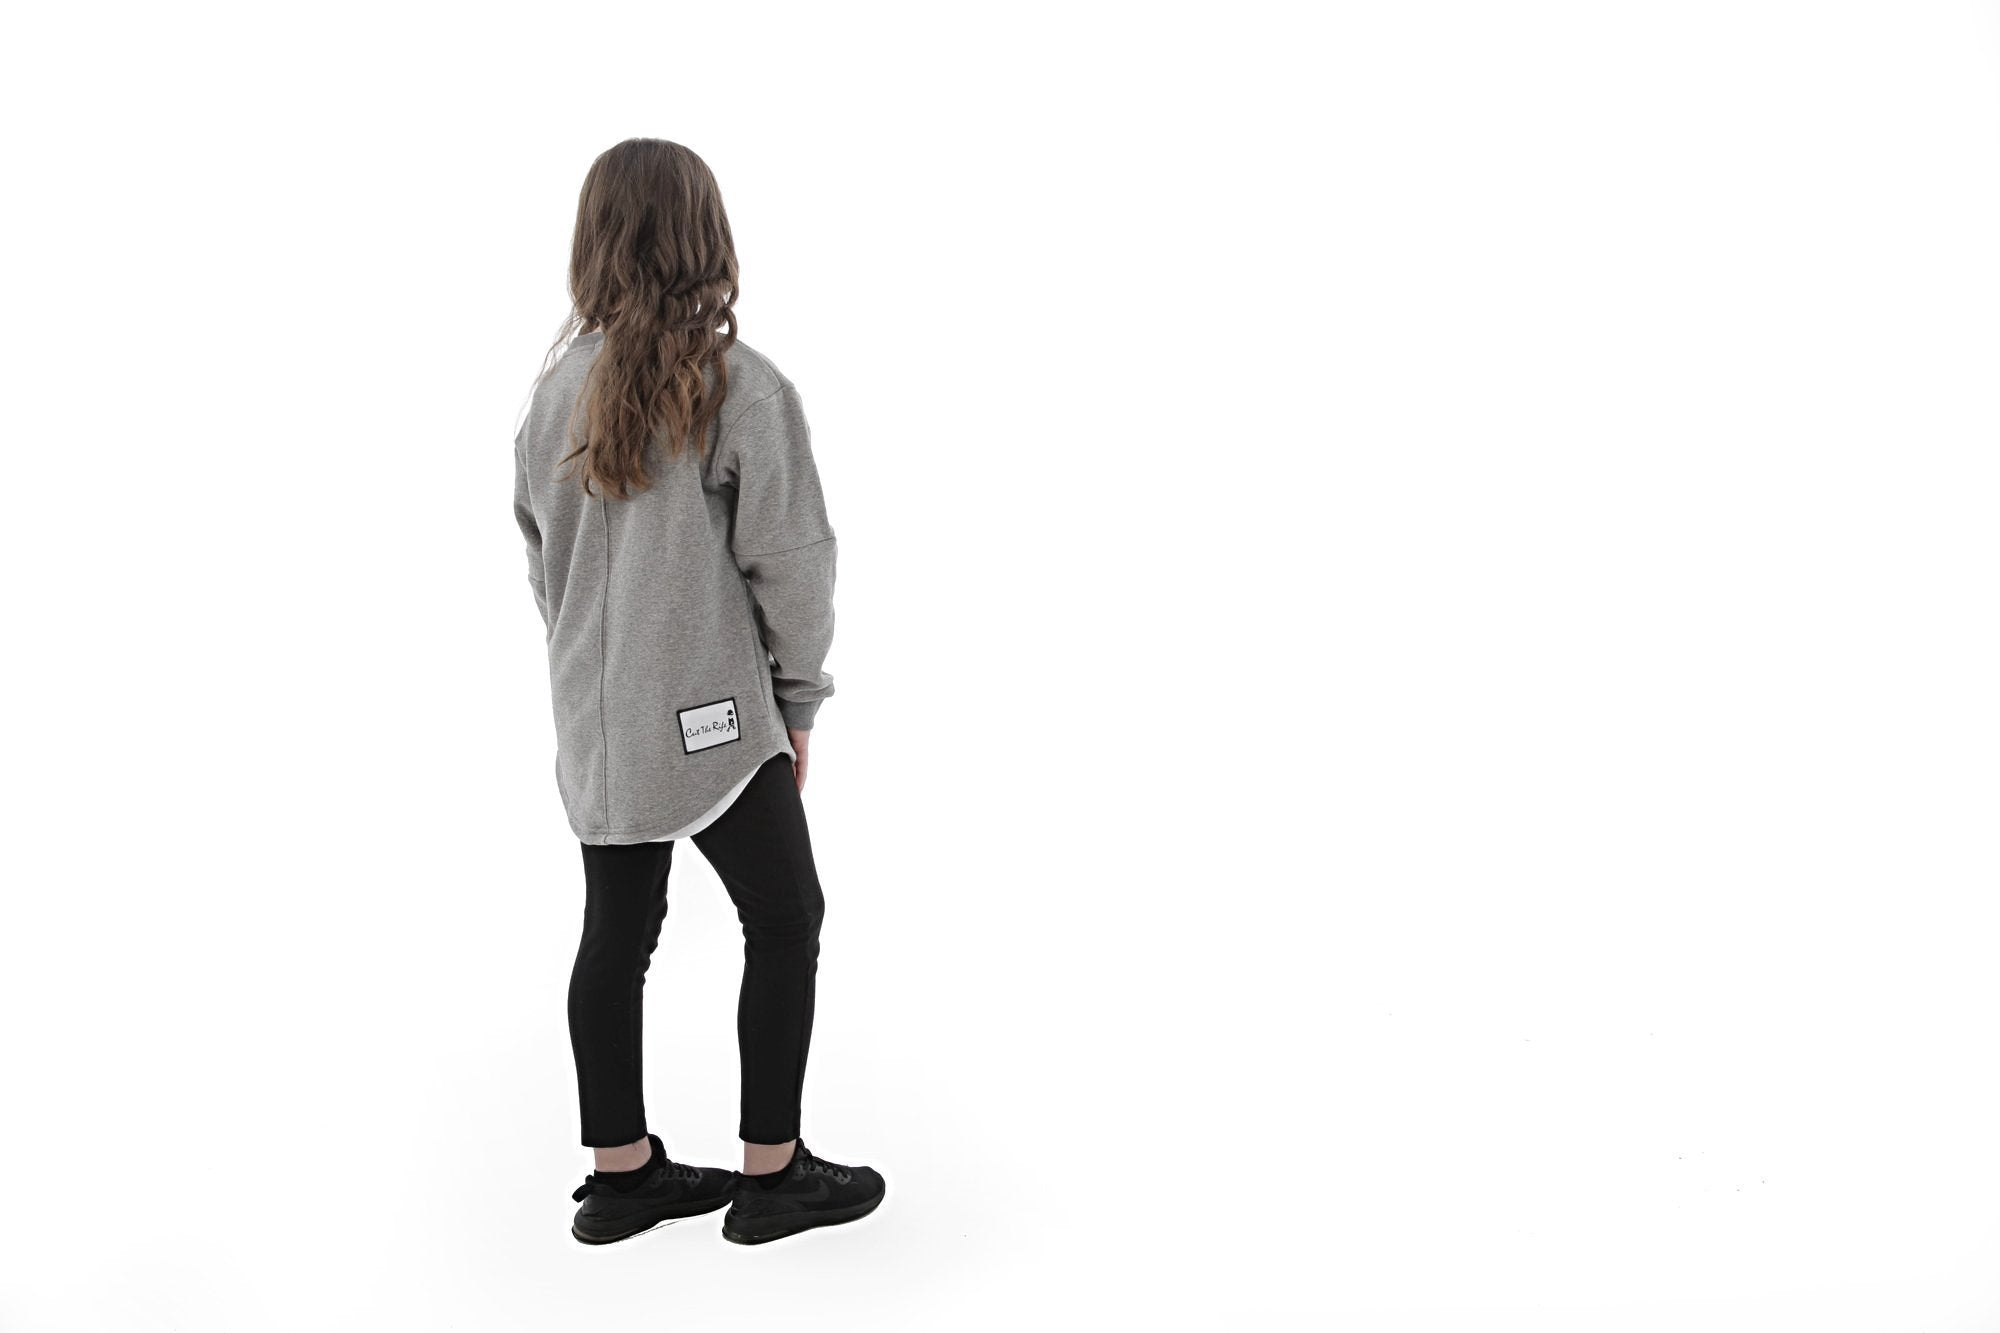 kids oversized soft lingsleeve sweater with rounded hem, by Cut the Rife